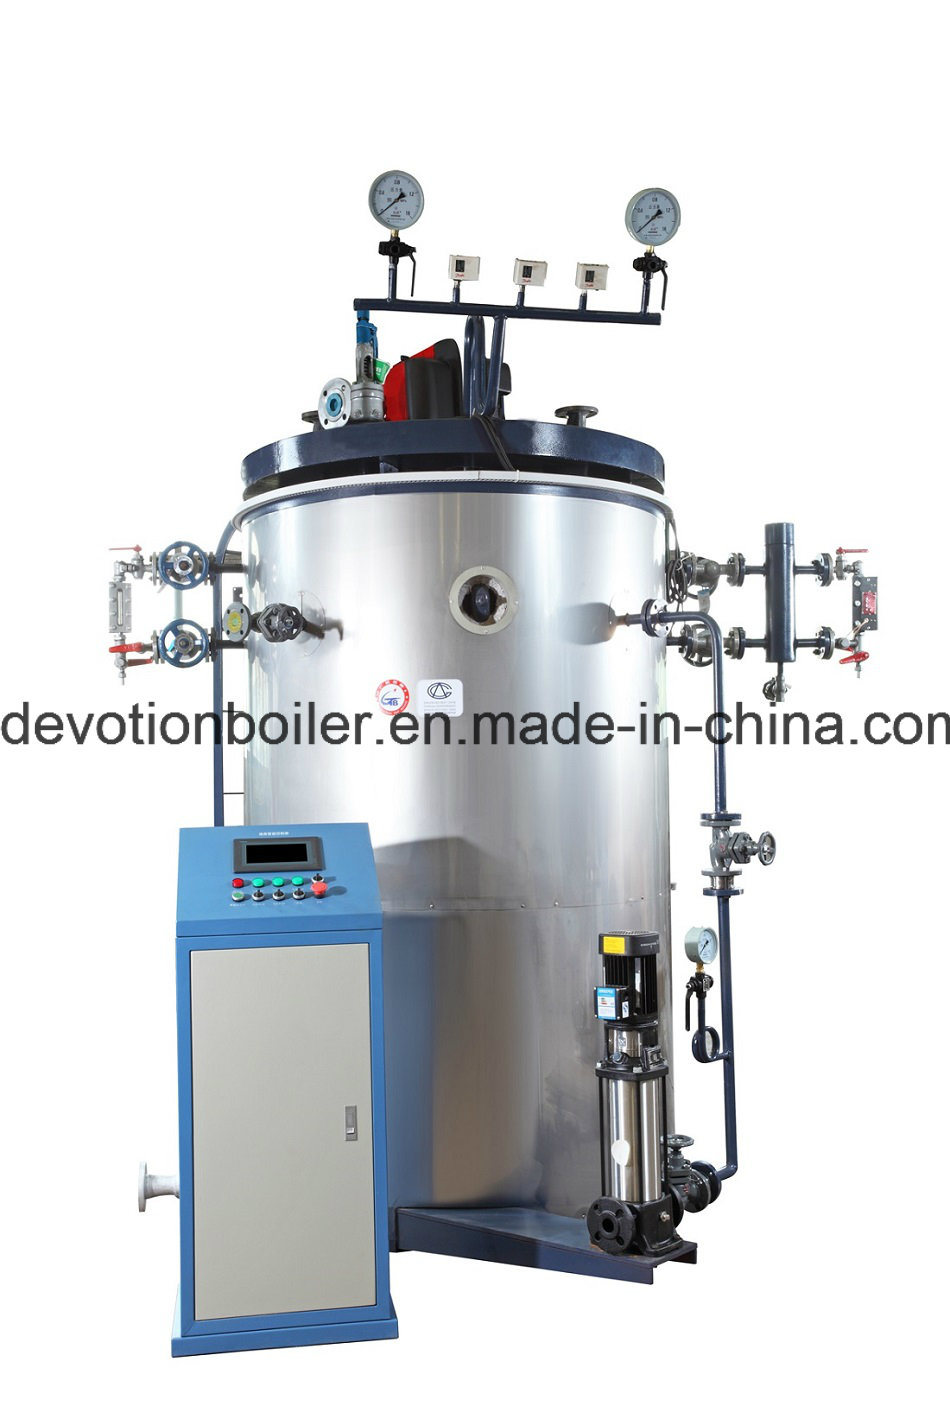 China Fuel Gas, Oil Hot Water & Steam Boiler China Manufacturer ...